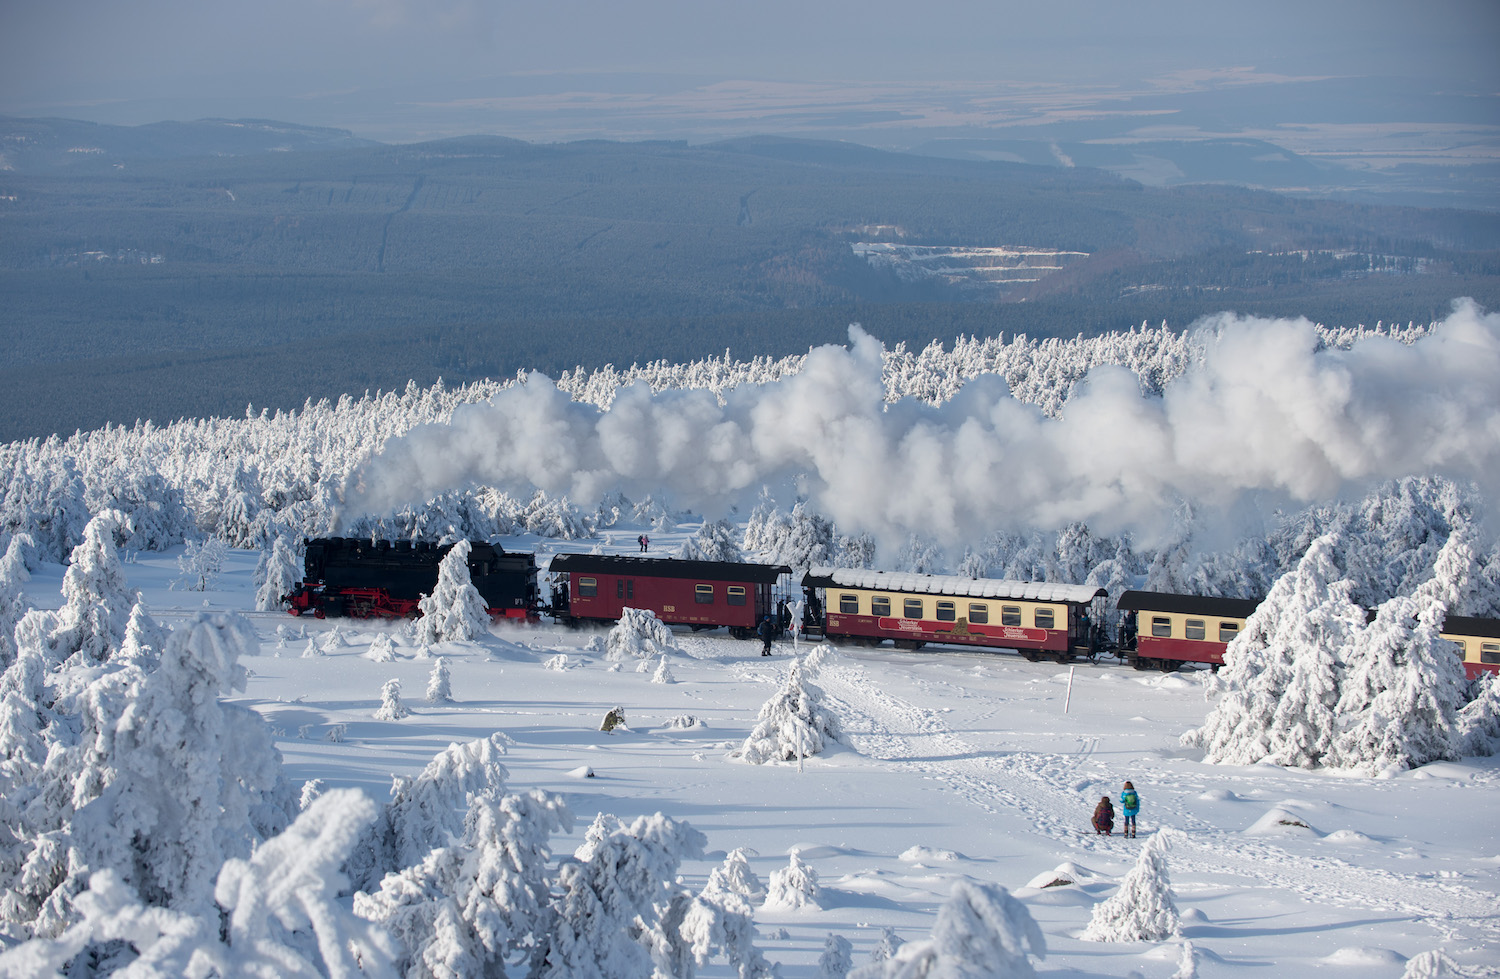 TOPSHOT - A train of the Harzer Schmalspurbahn (Harz narrow gauge train) makes its way through the snowy landscape at the Brocken mountain near Schierke in the Harz region, central Germany, on February 6, 2018. / AFP PHOTO / dpa / Klaus-Dietmar Gabbert / Germany OUT        (Photo credit should read KLAUS-DIETMAR GABBERT/AFP/Getty Images)